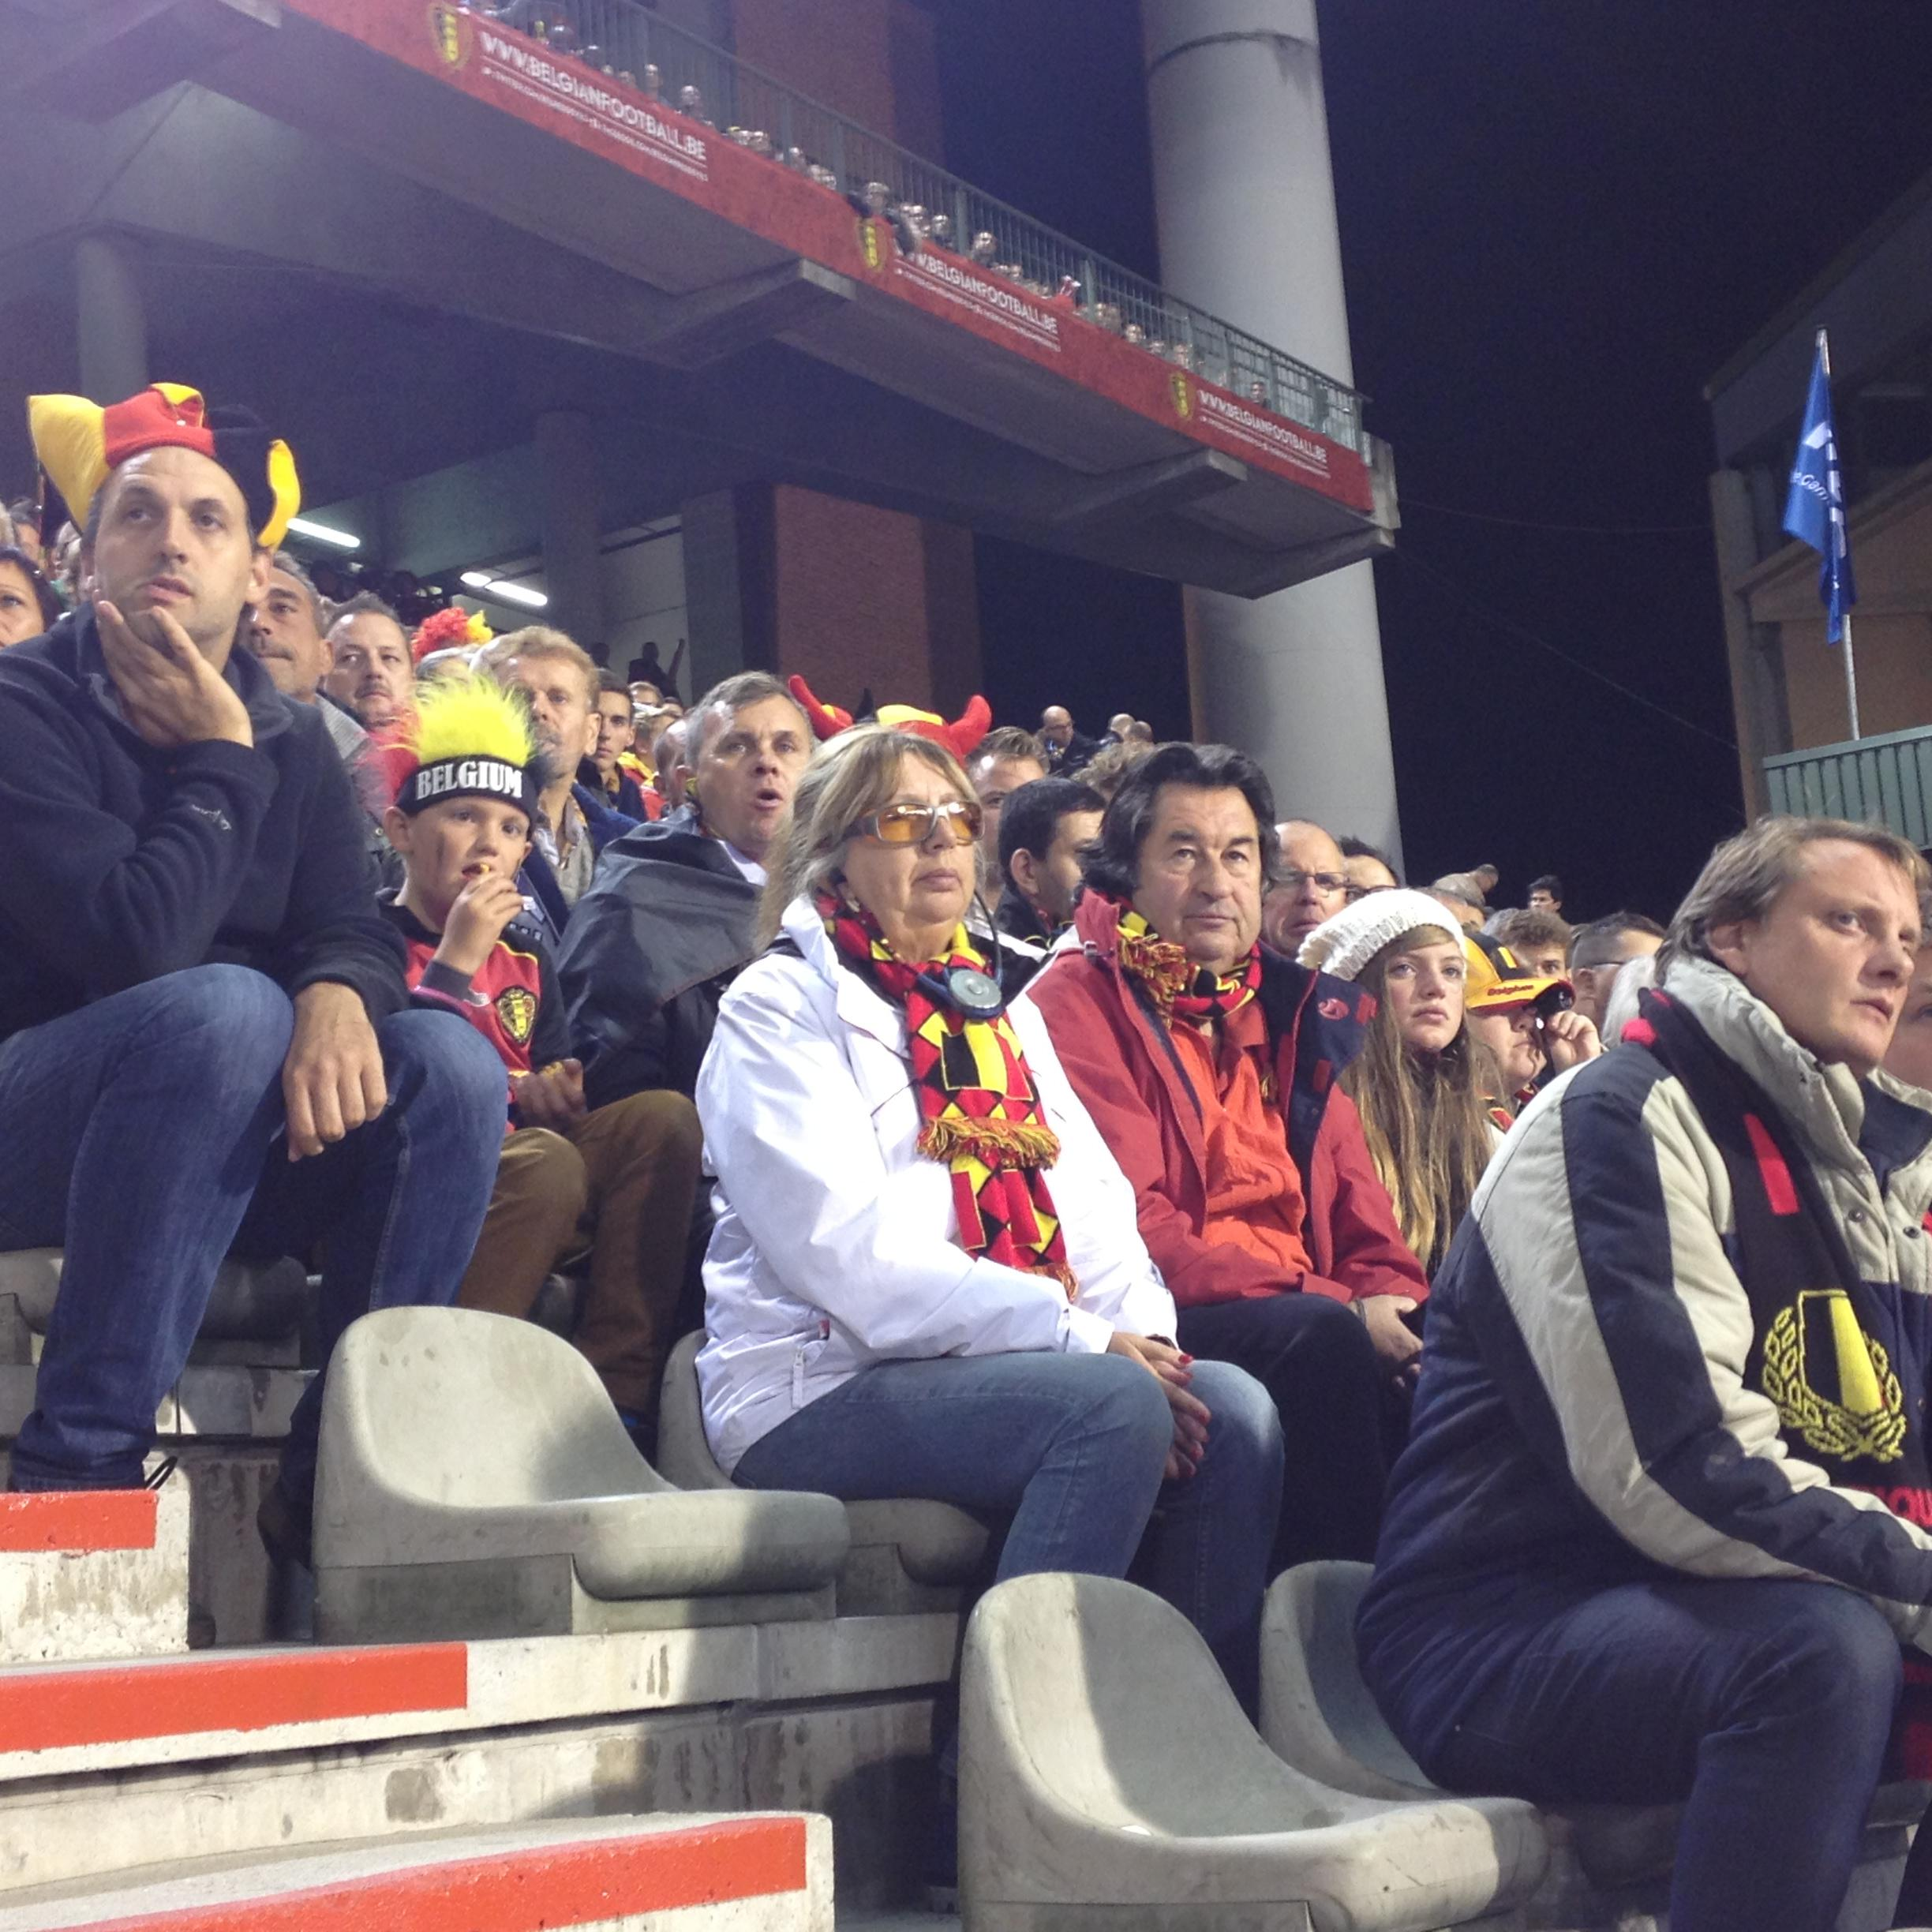 Supporters van de Rode Duivels in de bindentribune